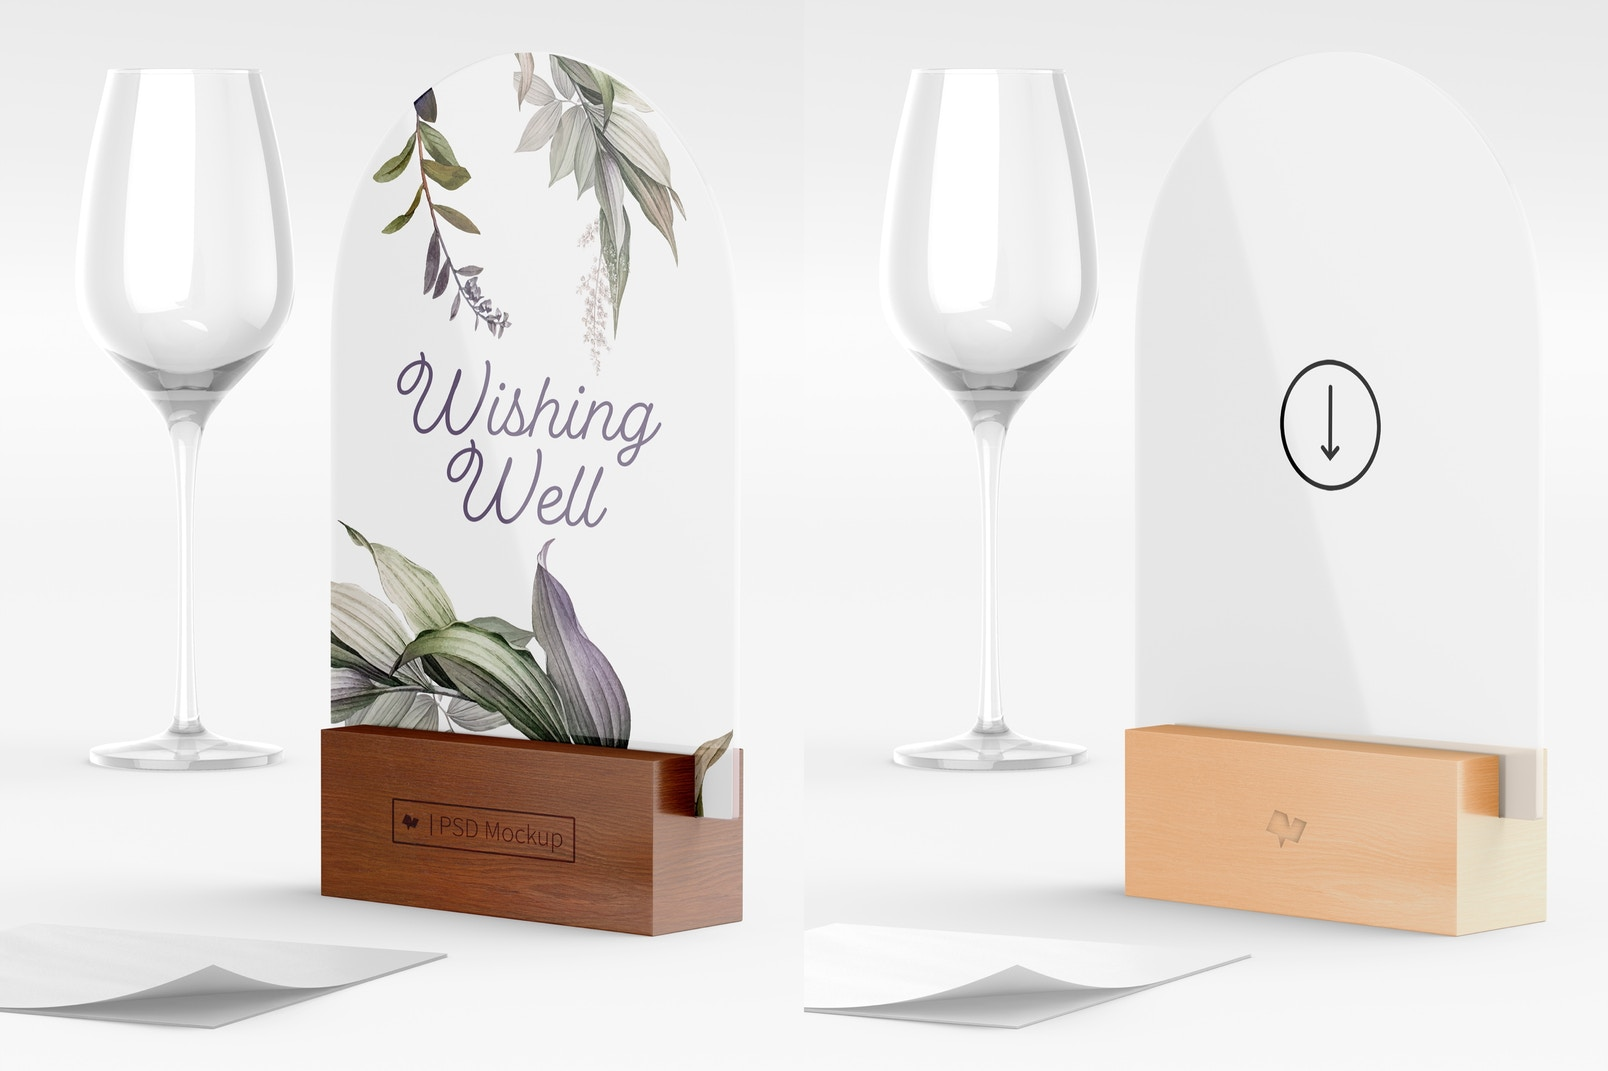 Acrylic Arch Table Sign Mockup, Left View